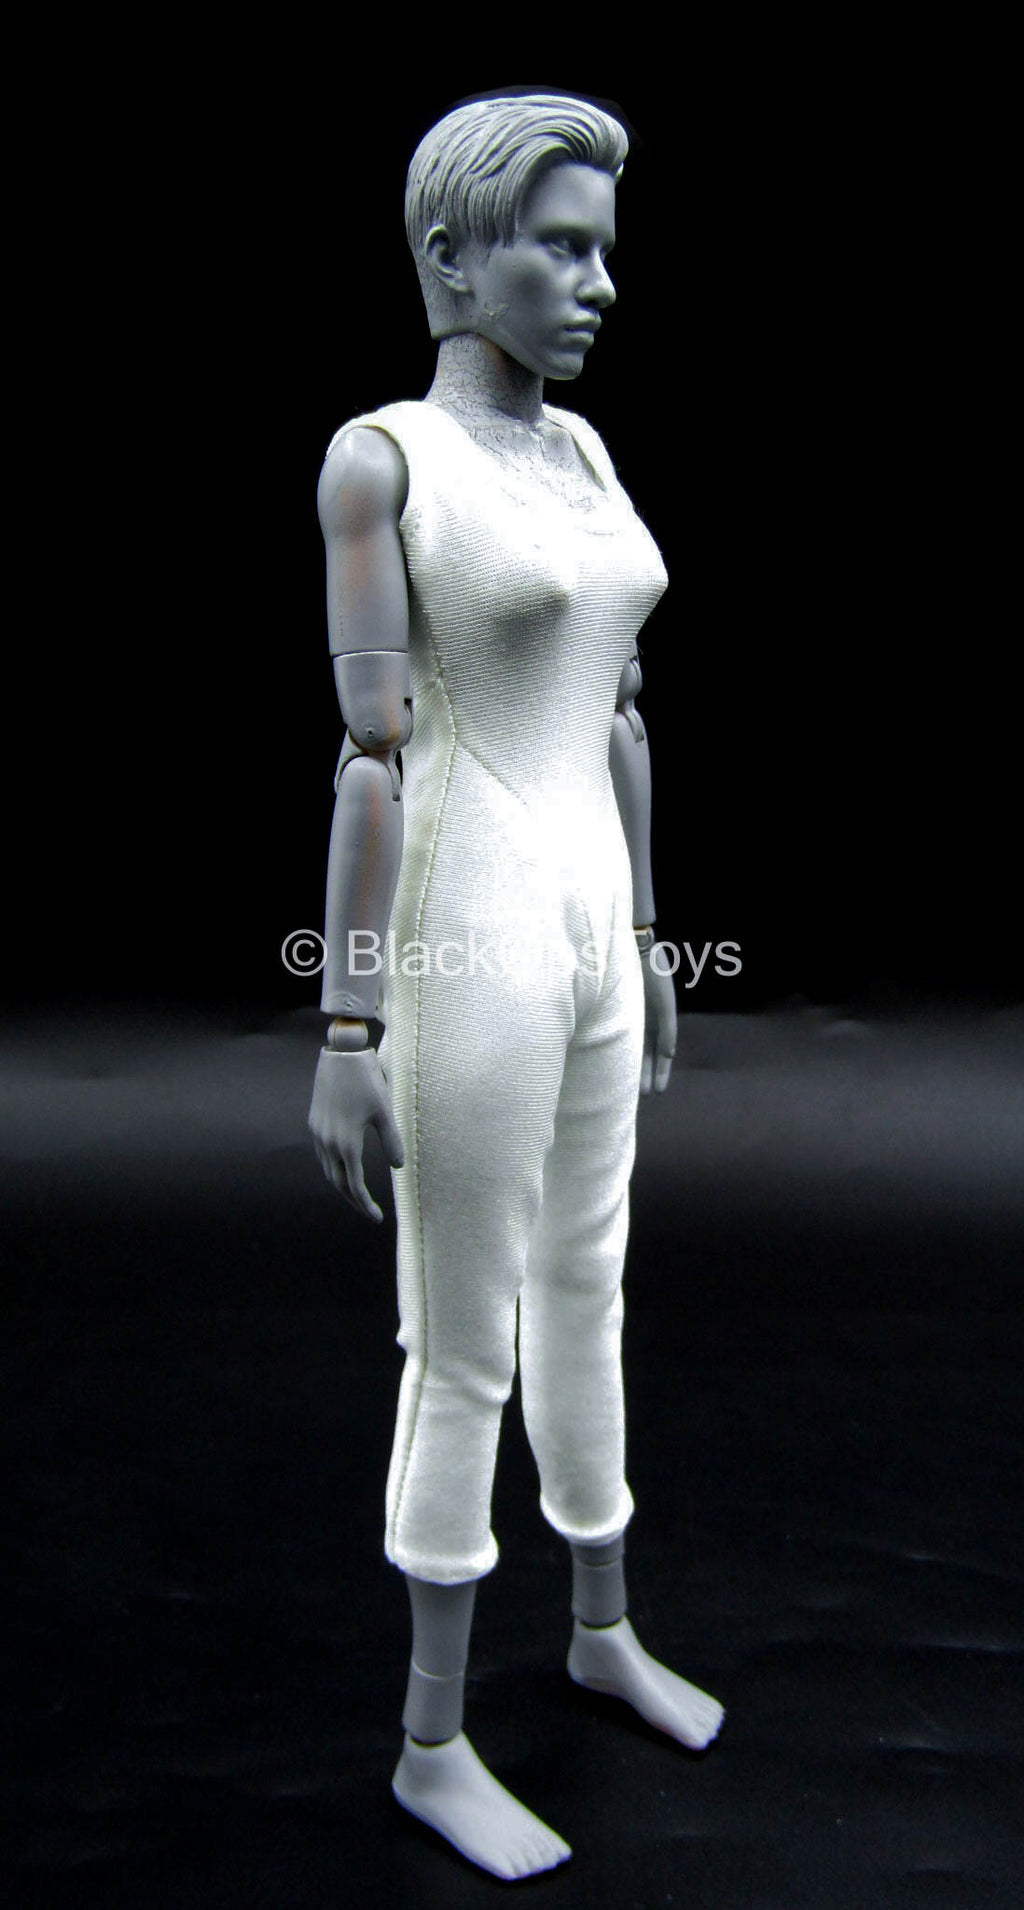 Annu Yuri - Female White Body Suit